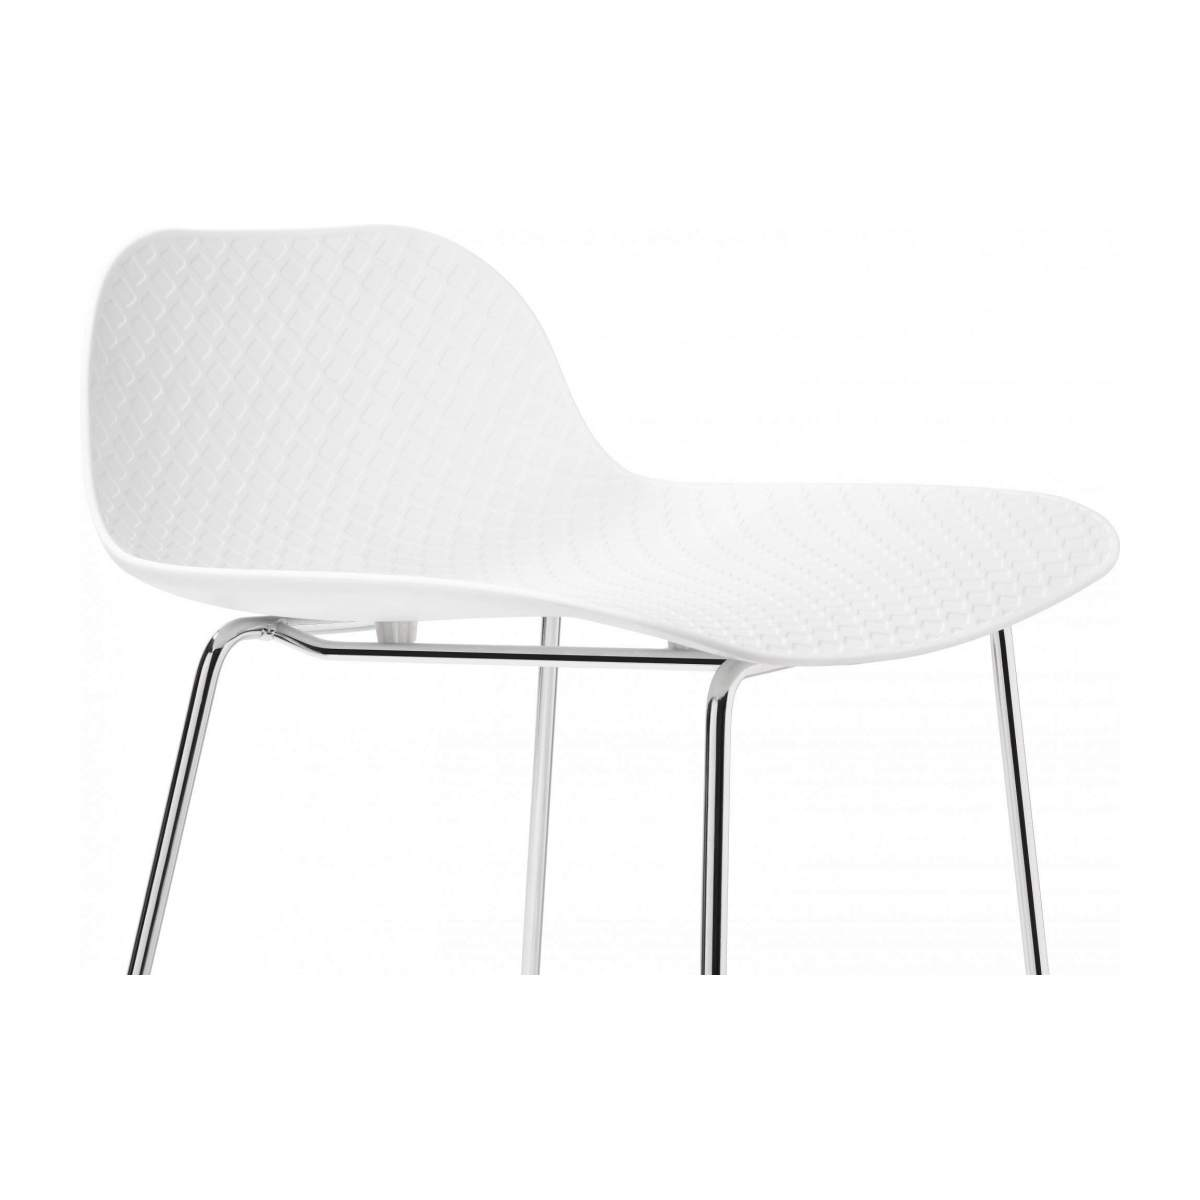 White high stool in polypropylene and lacquered steel legs n°5